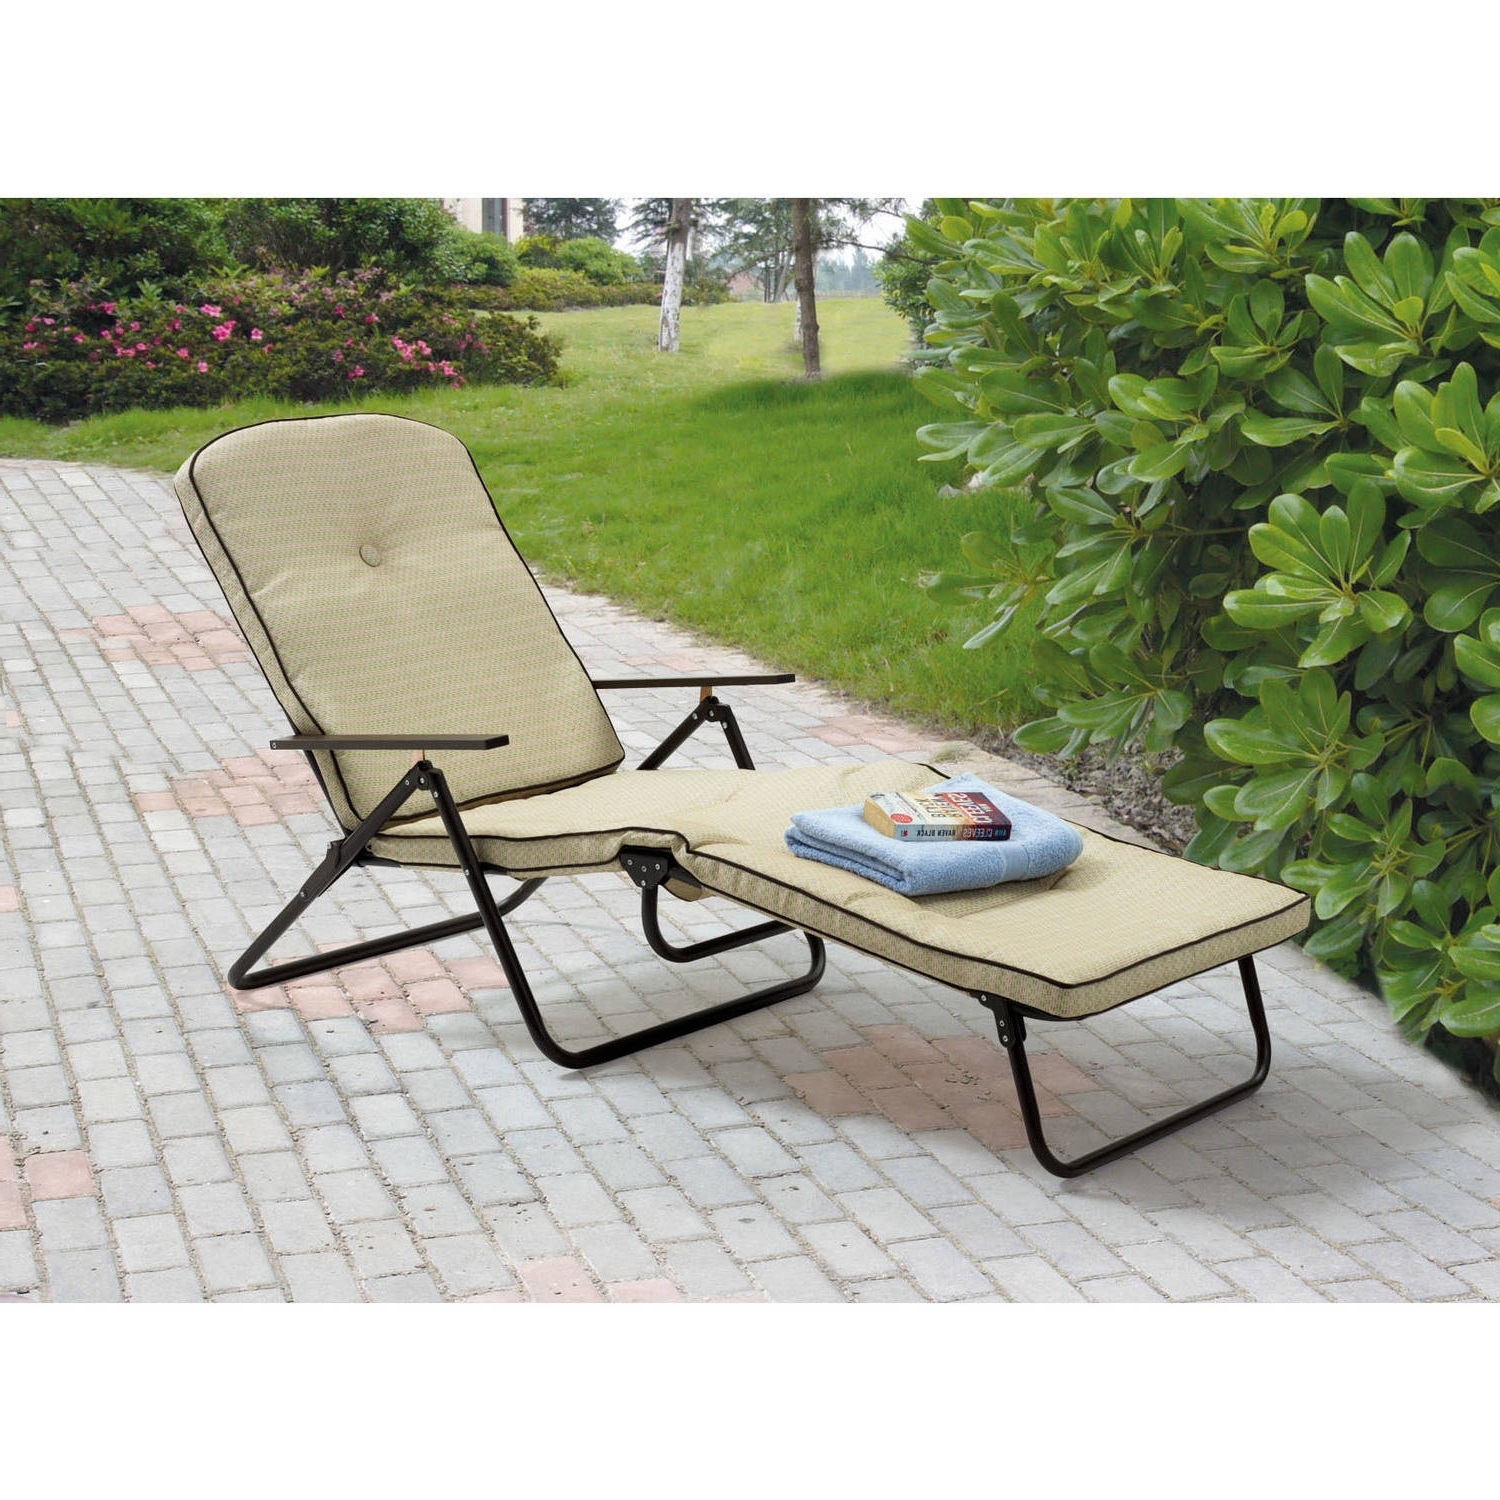 Cheap Folding Chaise Lounge Chairs For Outdoor Regarding Current Mainstays Sand Dune Outdoor Padded Folding Chaise Lounge, Tan (View 8 of 15)